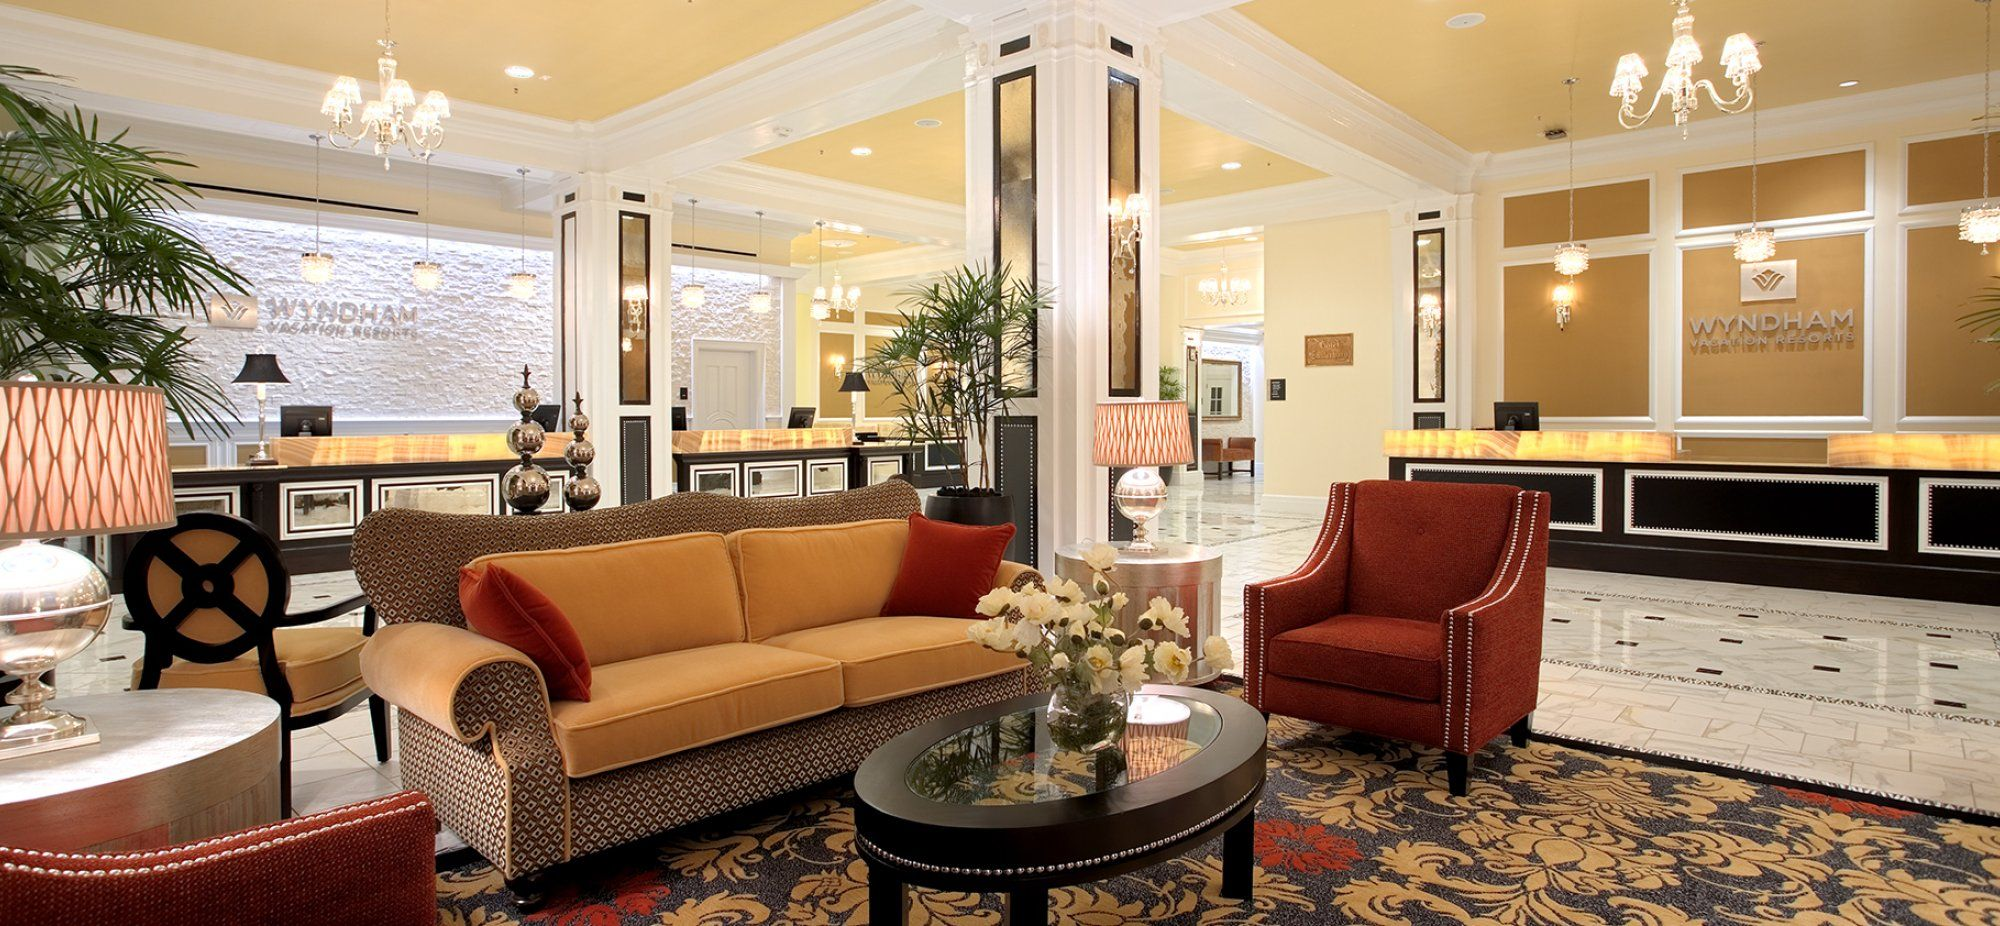 Images of 1920 39 s architecture and interior design google for 1920s hotel decor